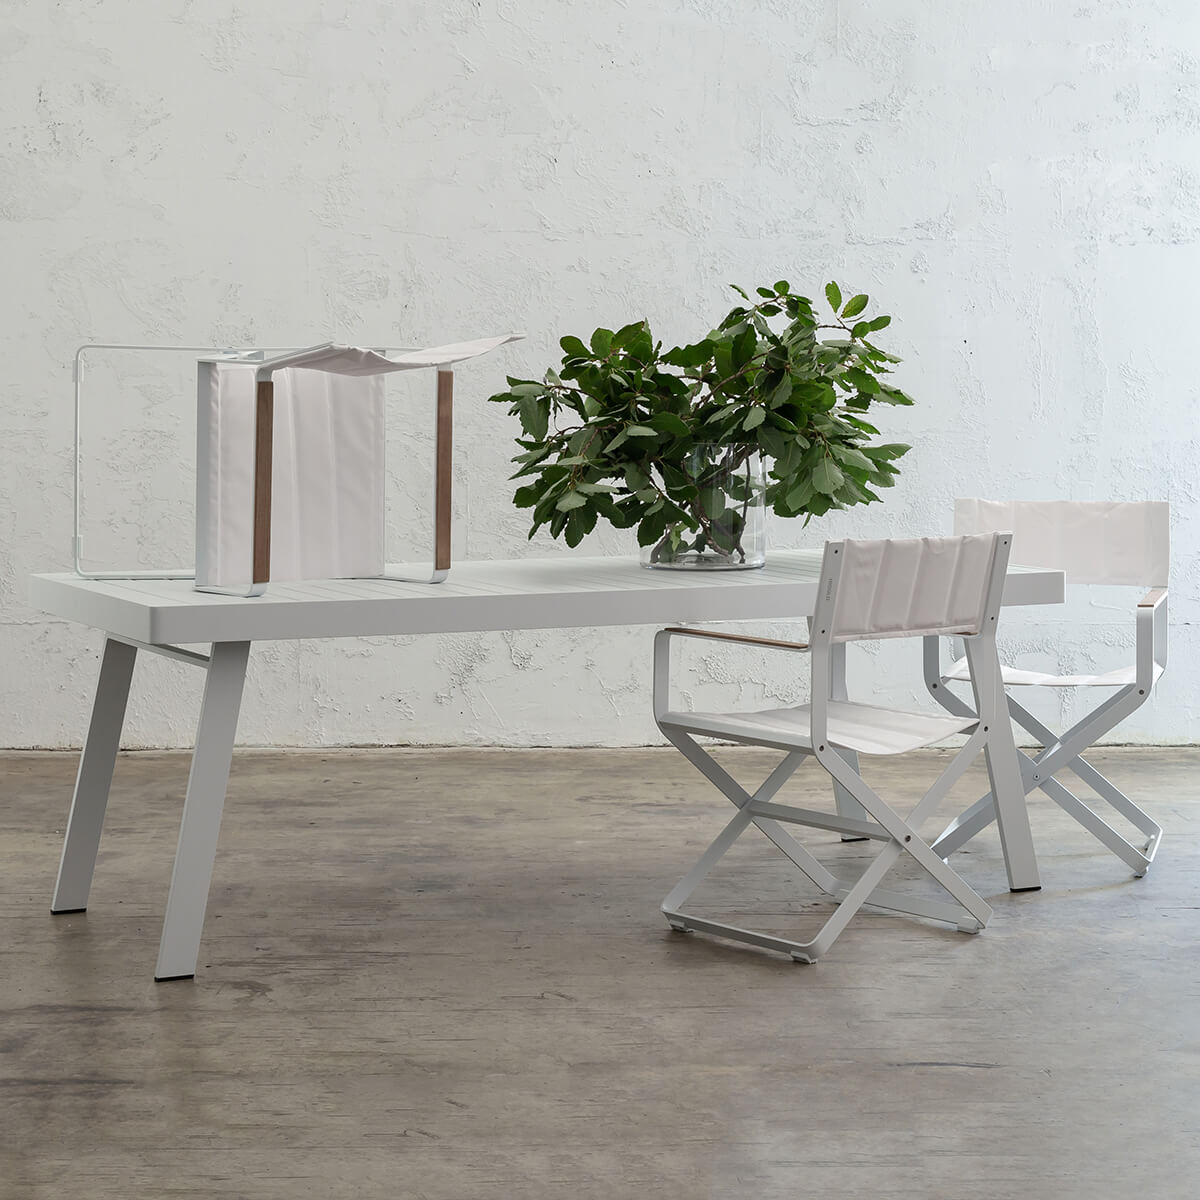 PALOMA OUTDOOR DIRECTOR CHAIR | WHITE ALUMINIUM FRAME